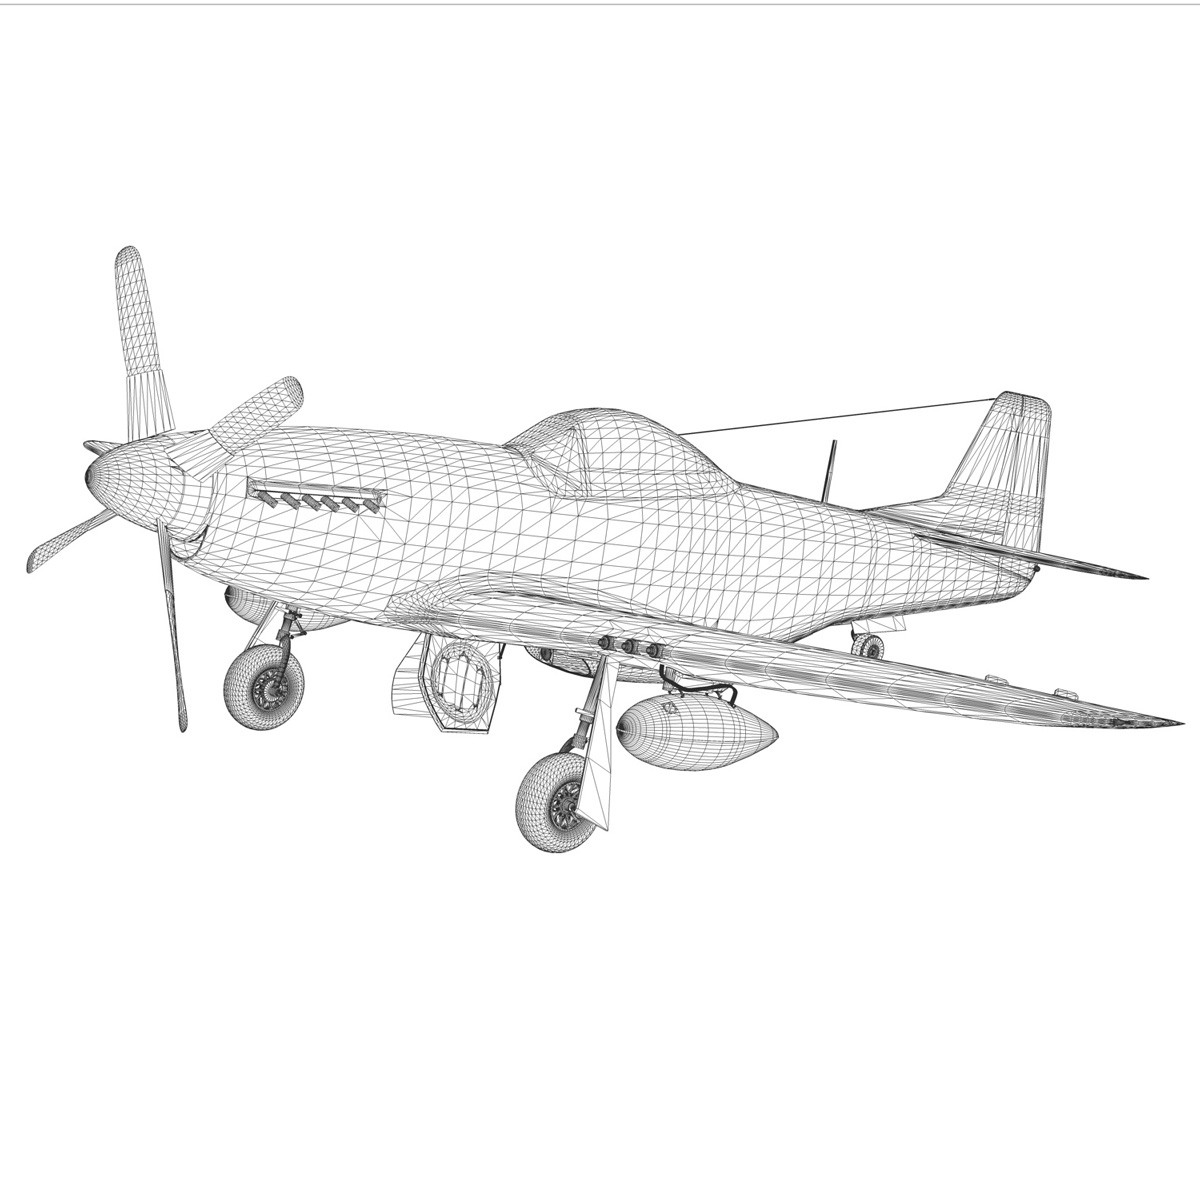 north american p-51d mustang – speedball alice 3d model fbx c4d lwo obj 280329